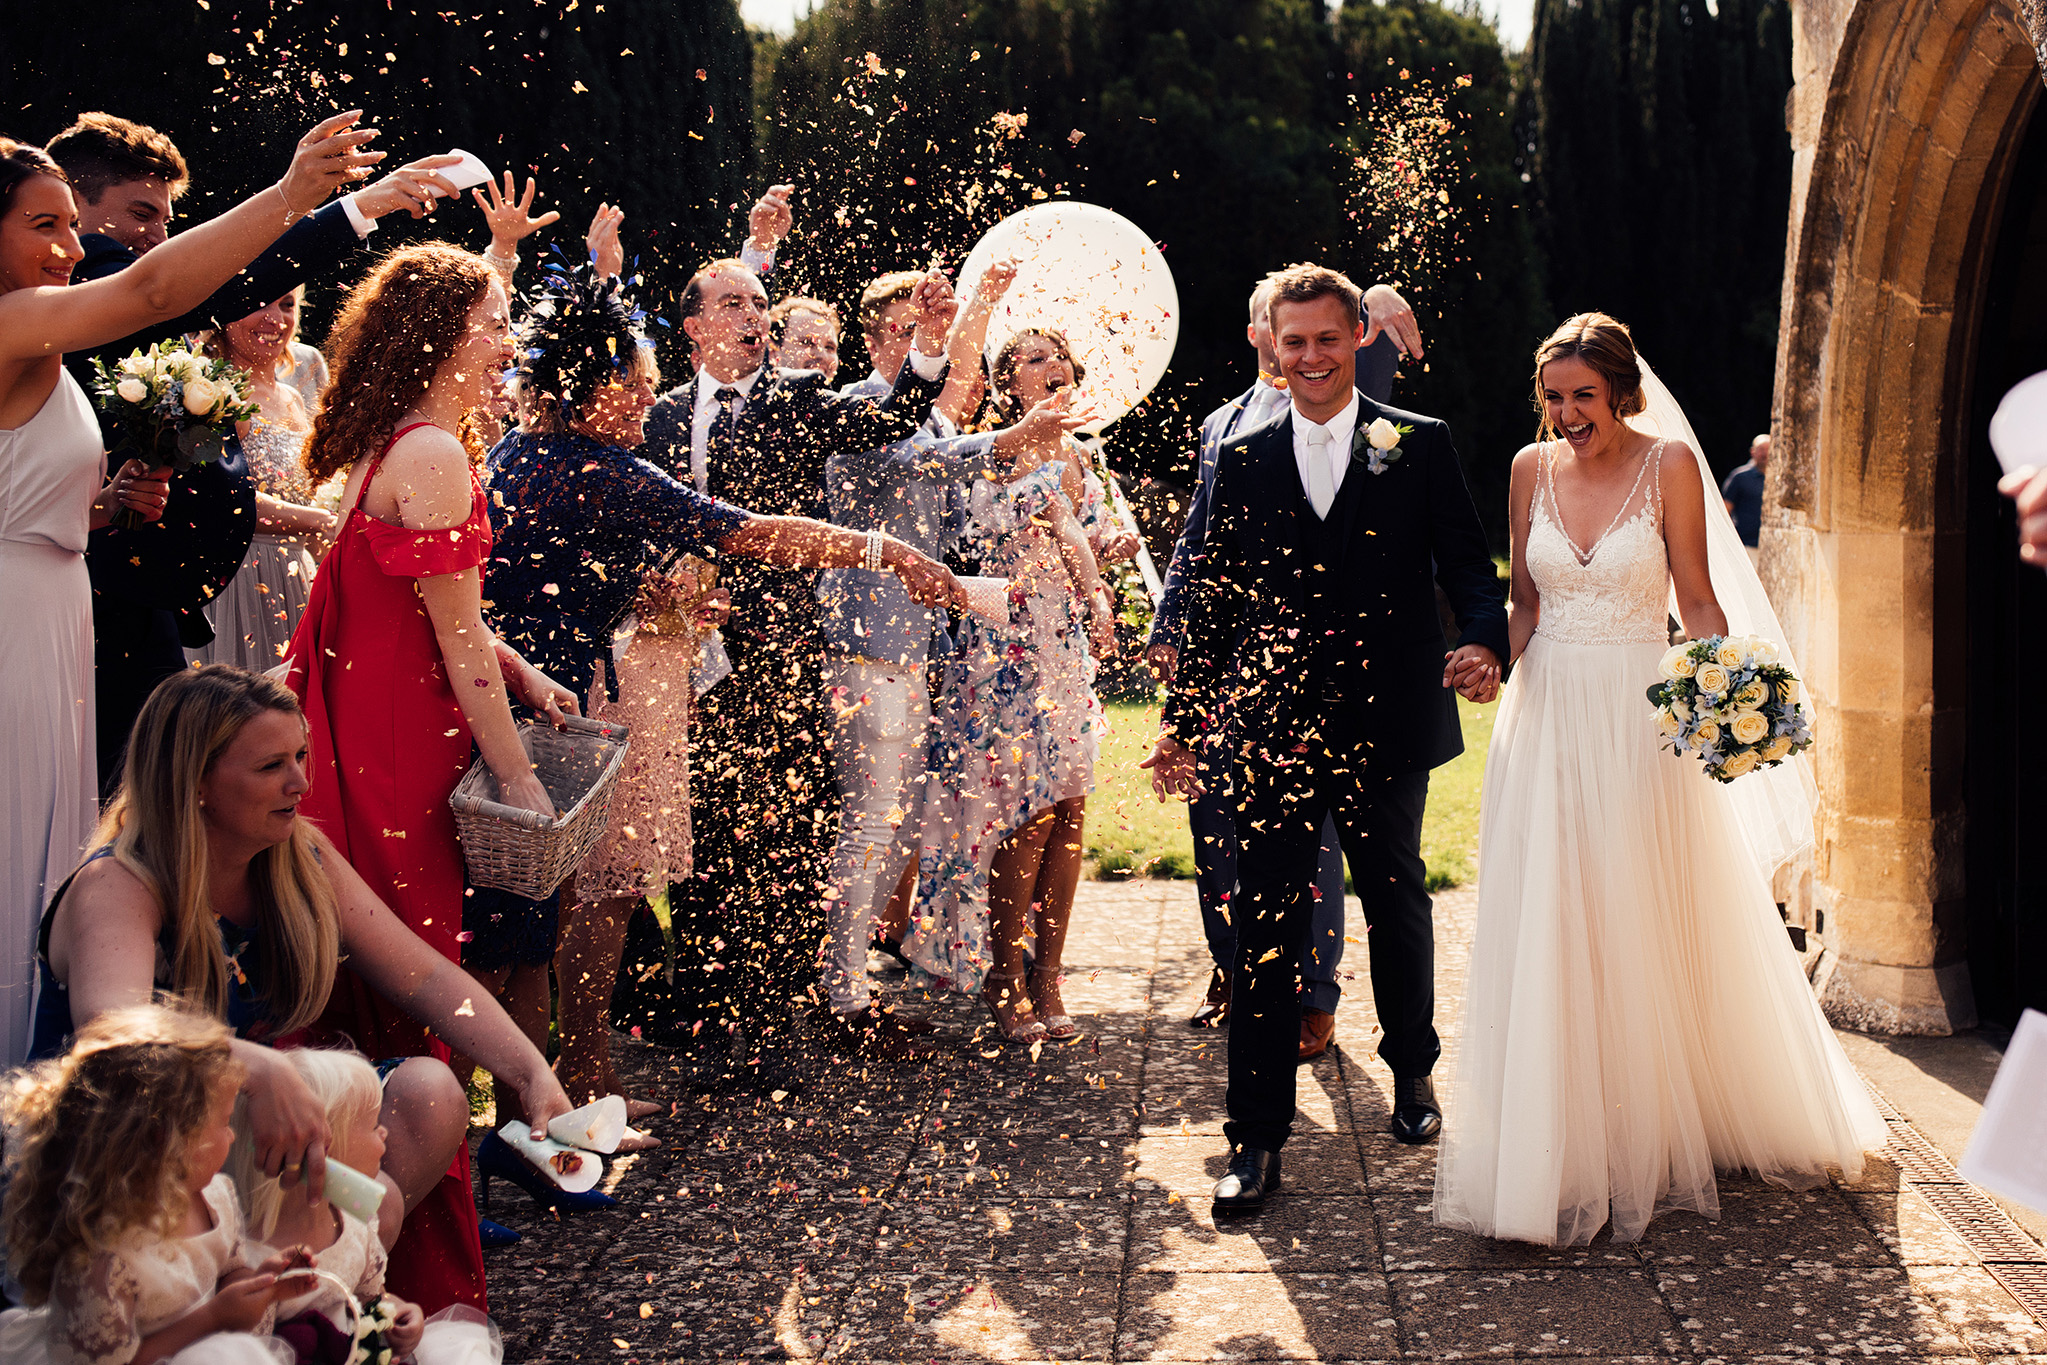 PapaKåta Sperry Wedding in Oxfordshire by Harry Michael Photography- Confetti throw